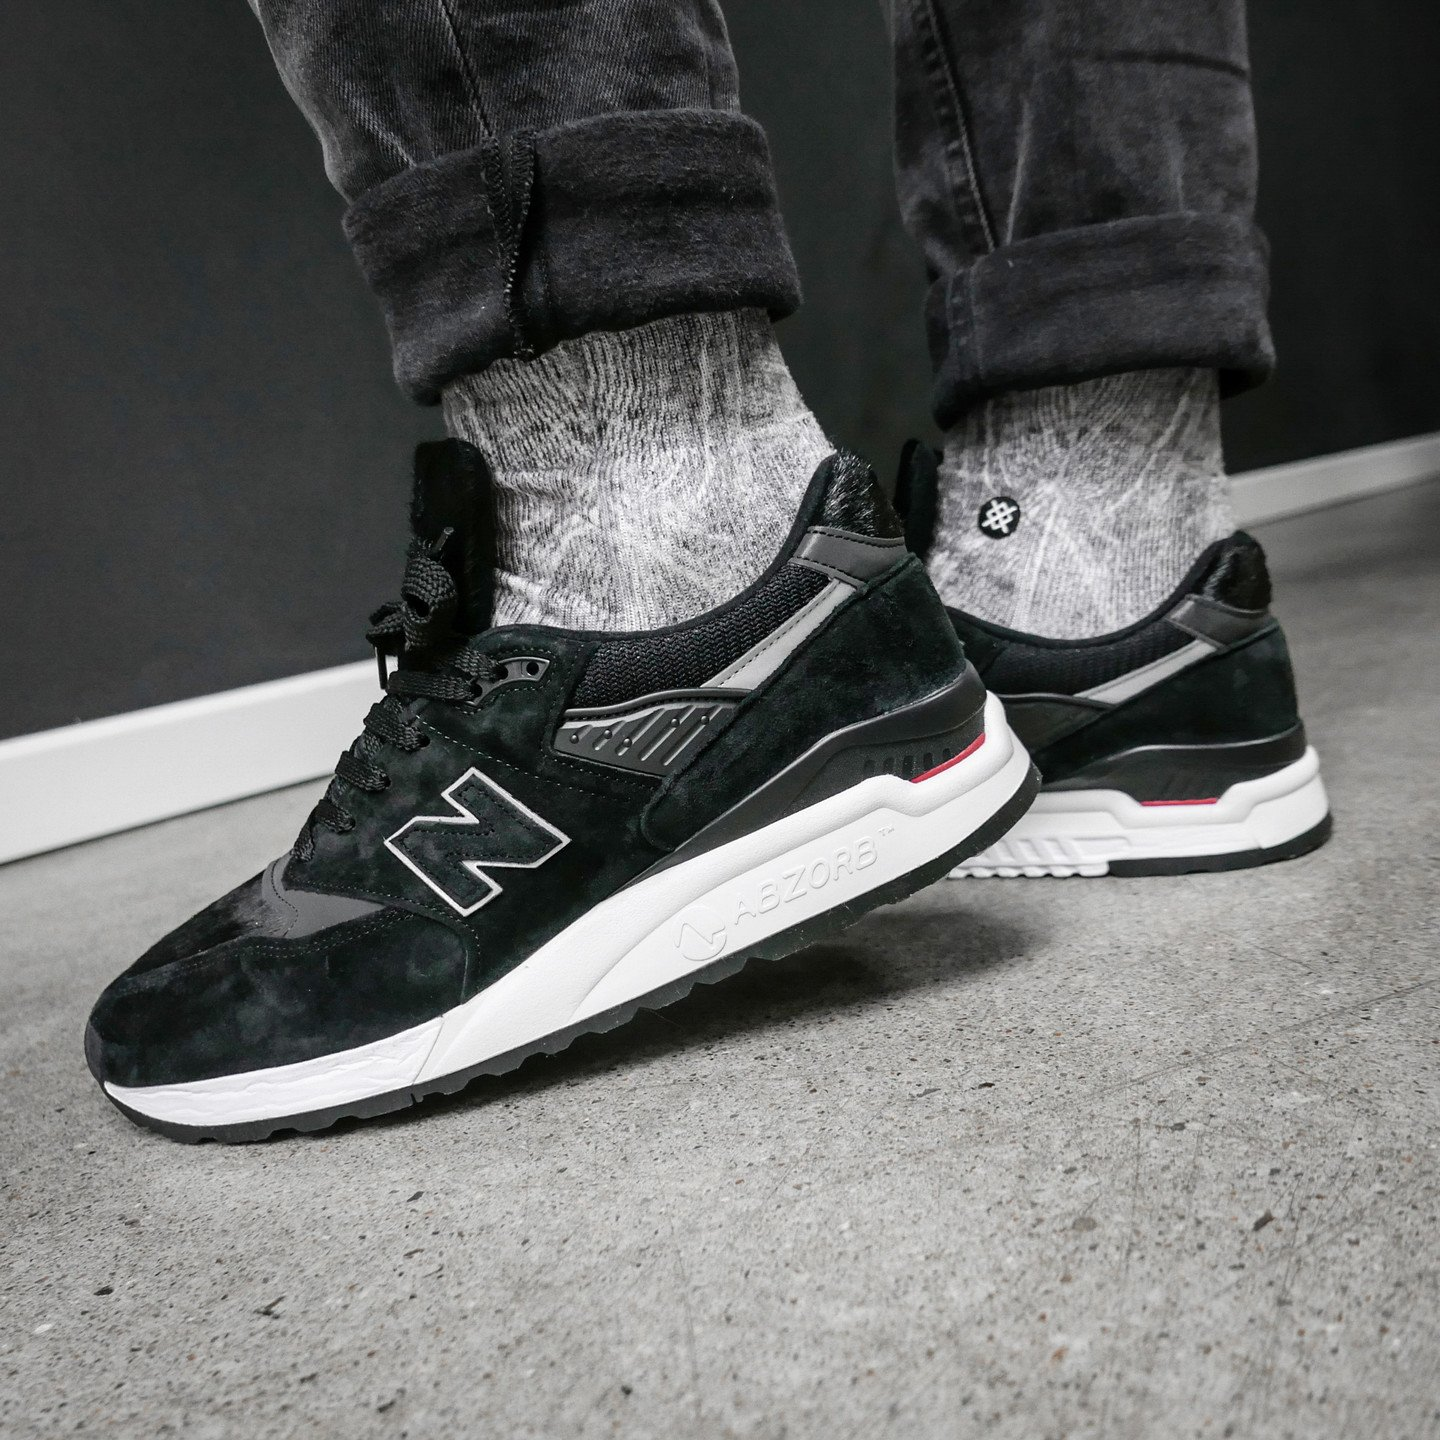 New Balance M998 'Black Pony' - Made in USA Black / White M998TCB